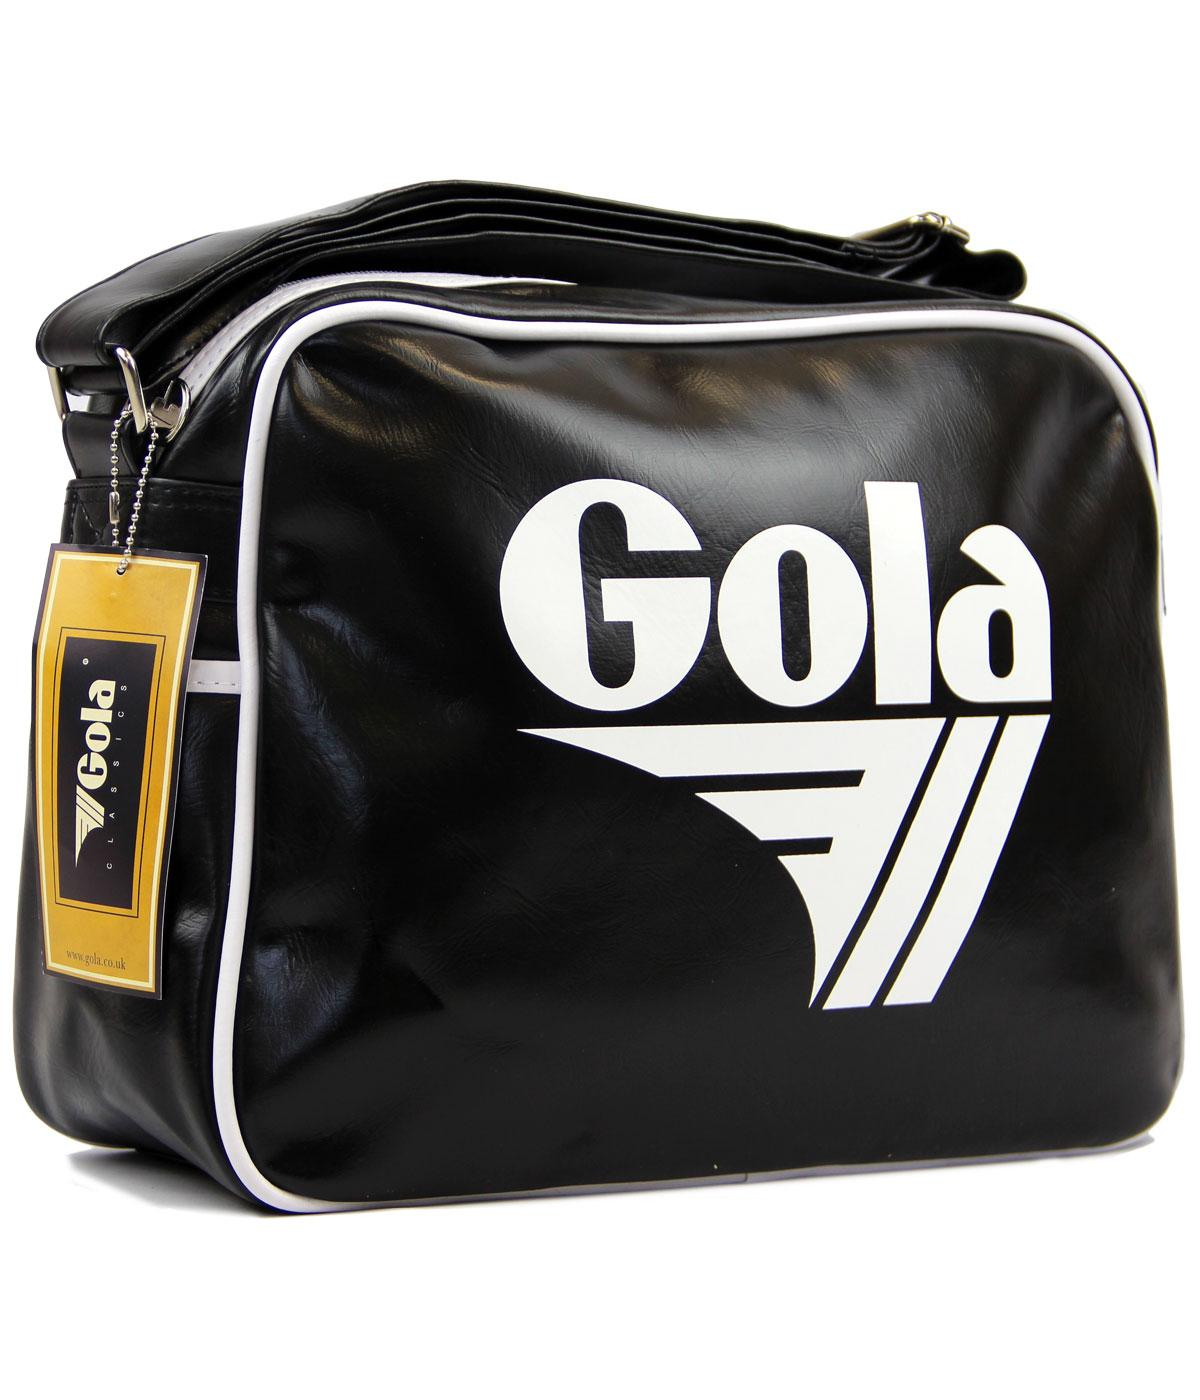 GOLA Redford Retro 70s Sports Shoulder Bag BLK/WHT